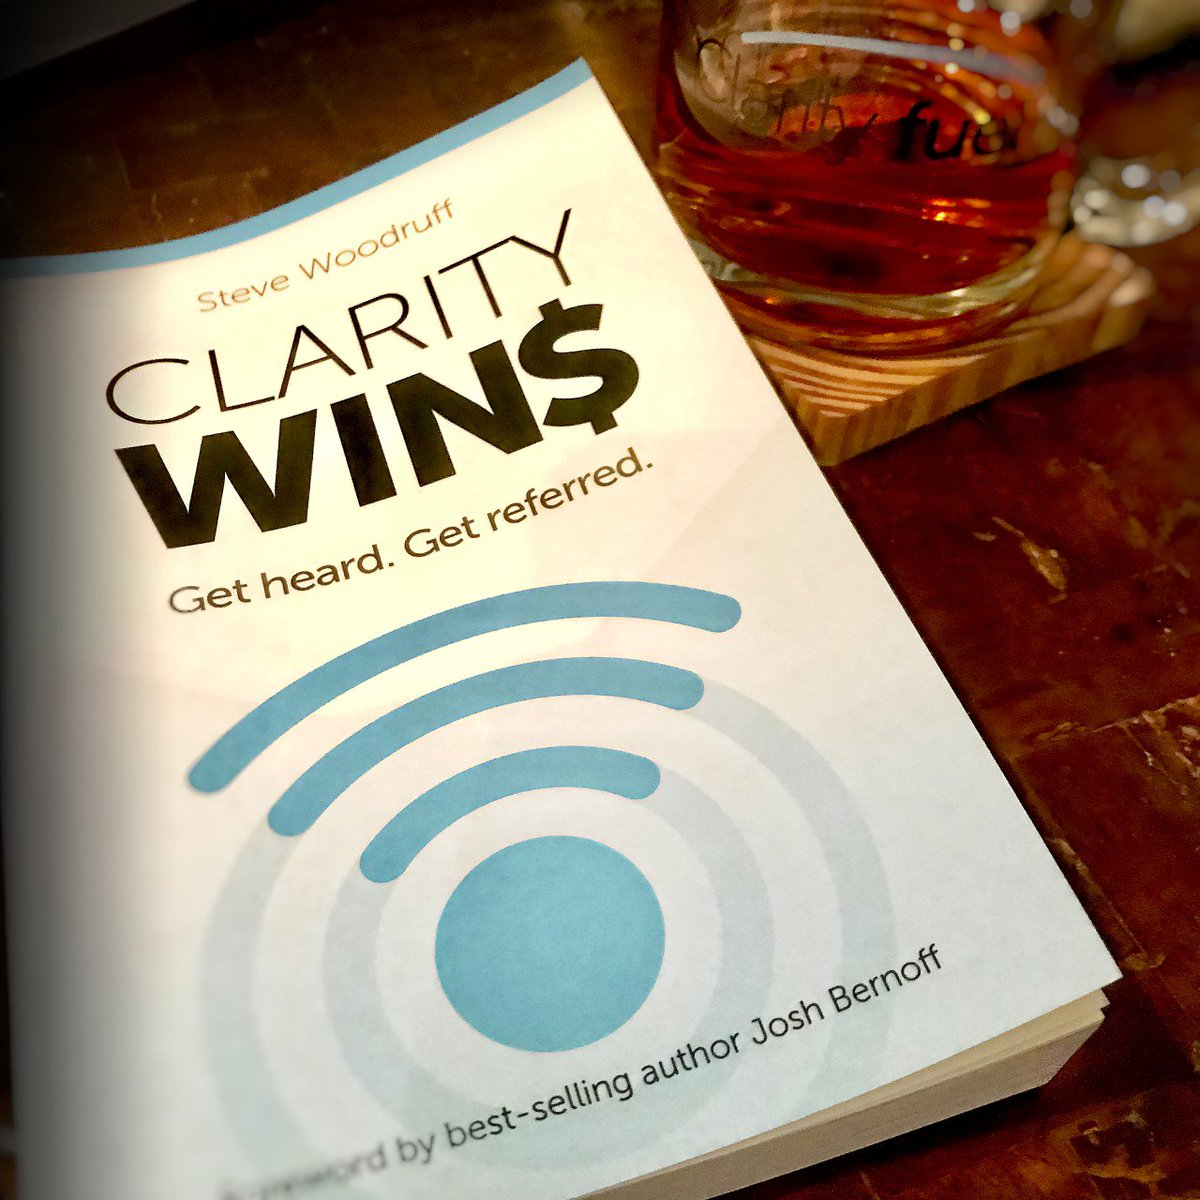 Hot off the presses:   Sales Prospecting: Why Clarity Wins http://bit.ly/2B0wt2G